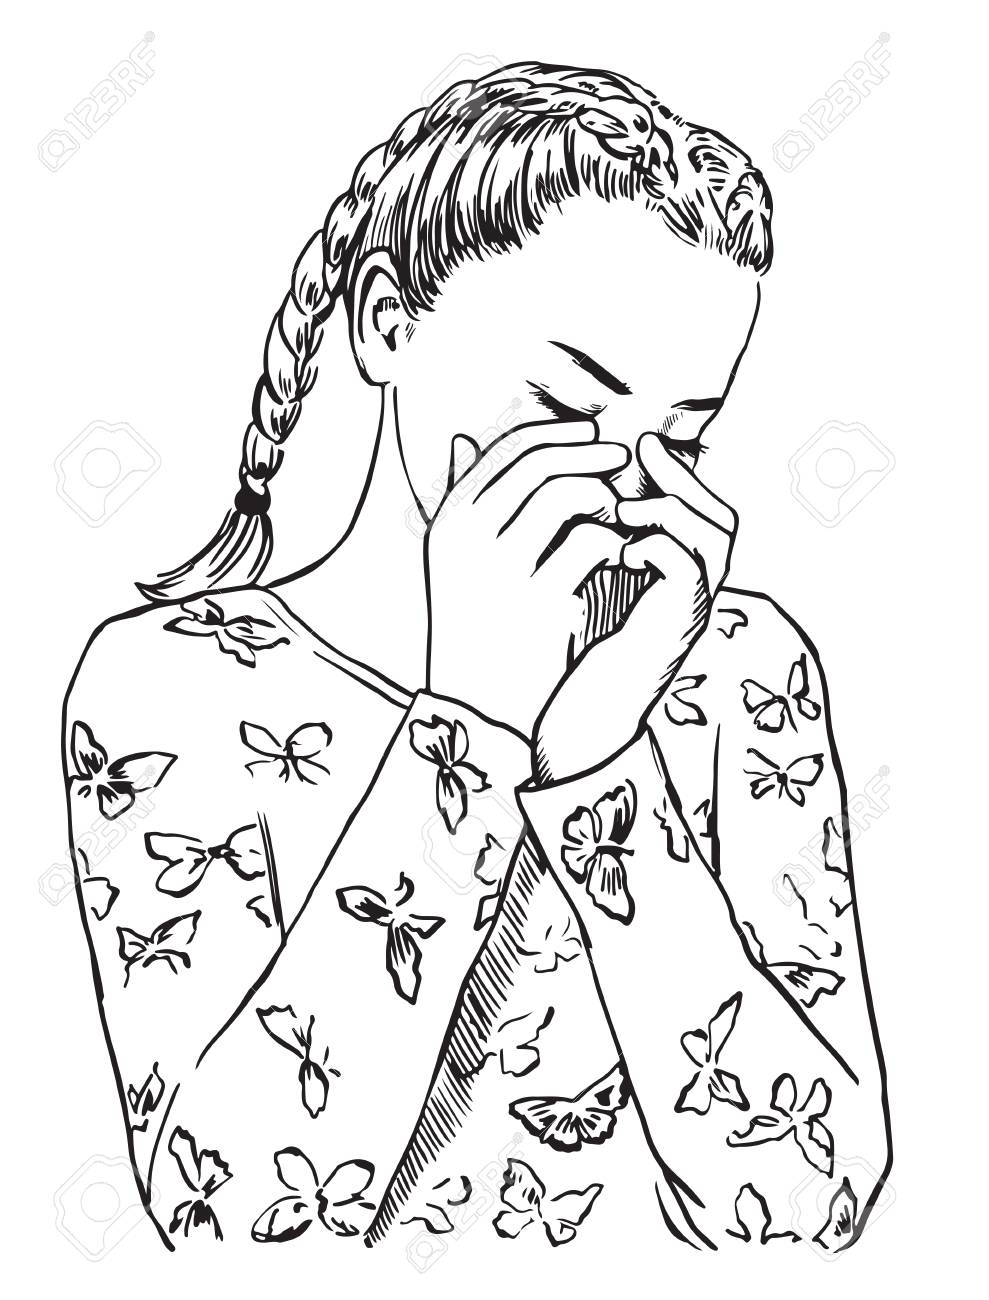 medium resolution of line drawing girl covering face wiring diagrams u2022young cute girl in sleepwear is crying covering